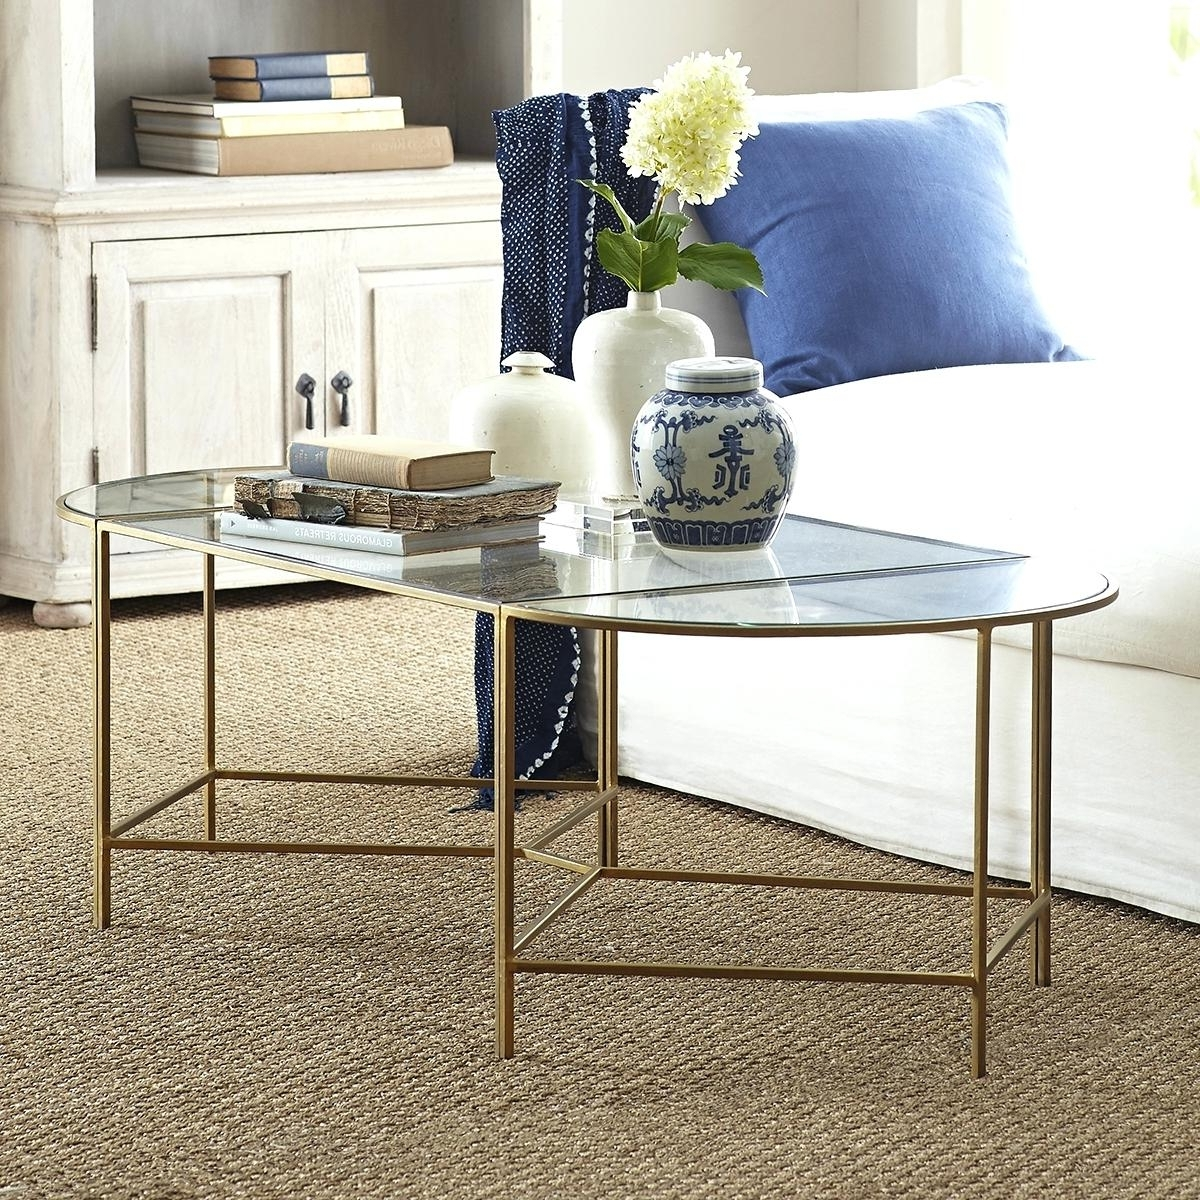 Well Known Expressionist Coffee Tables Inside Floor Coffee Table Floor Level Coffee Table – Shareforcures (View 19 of 20)